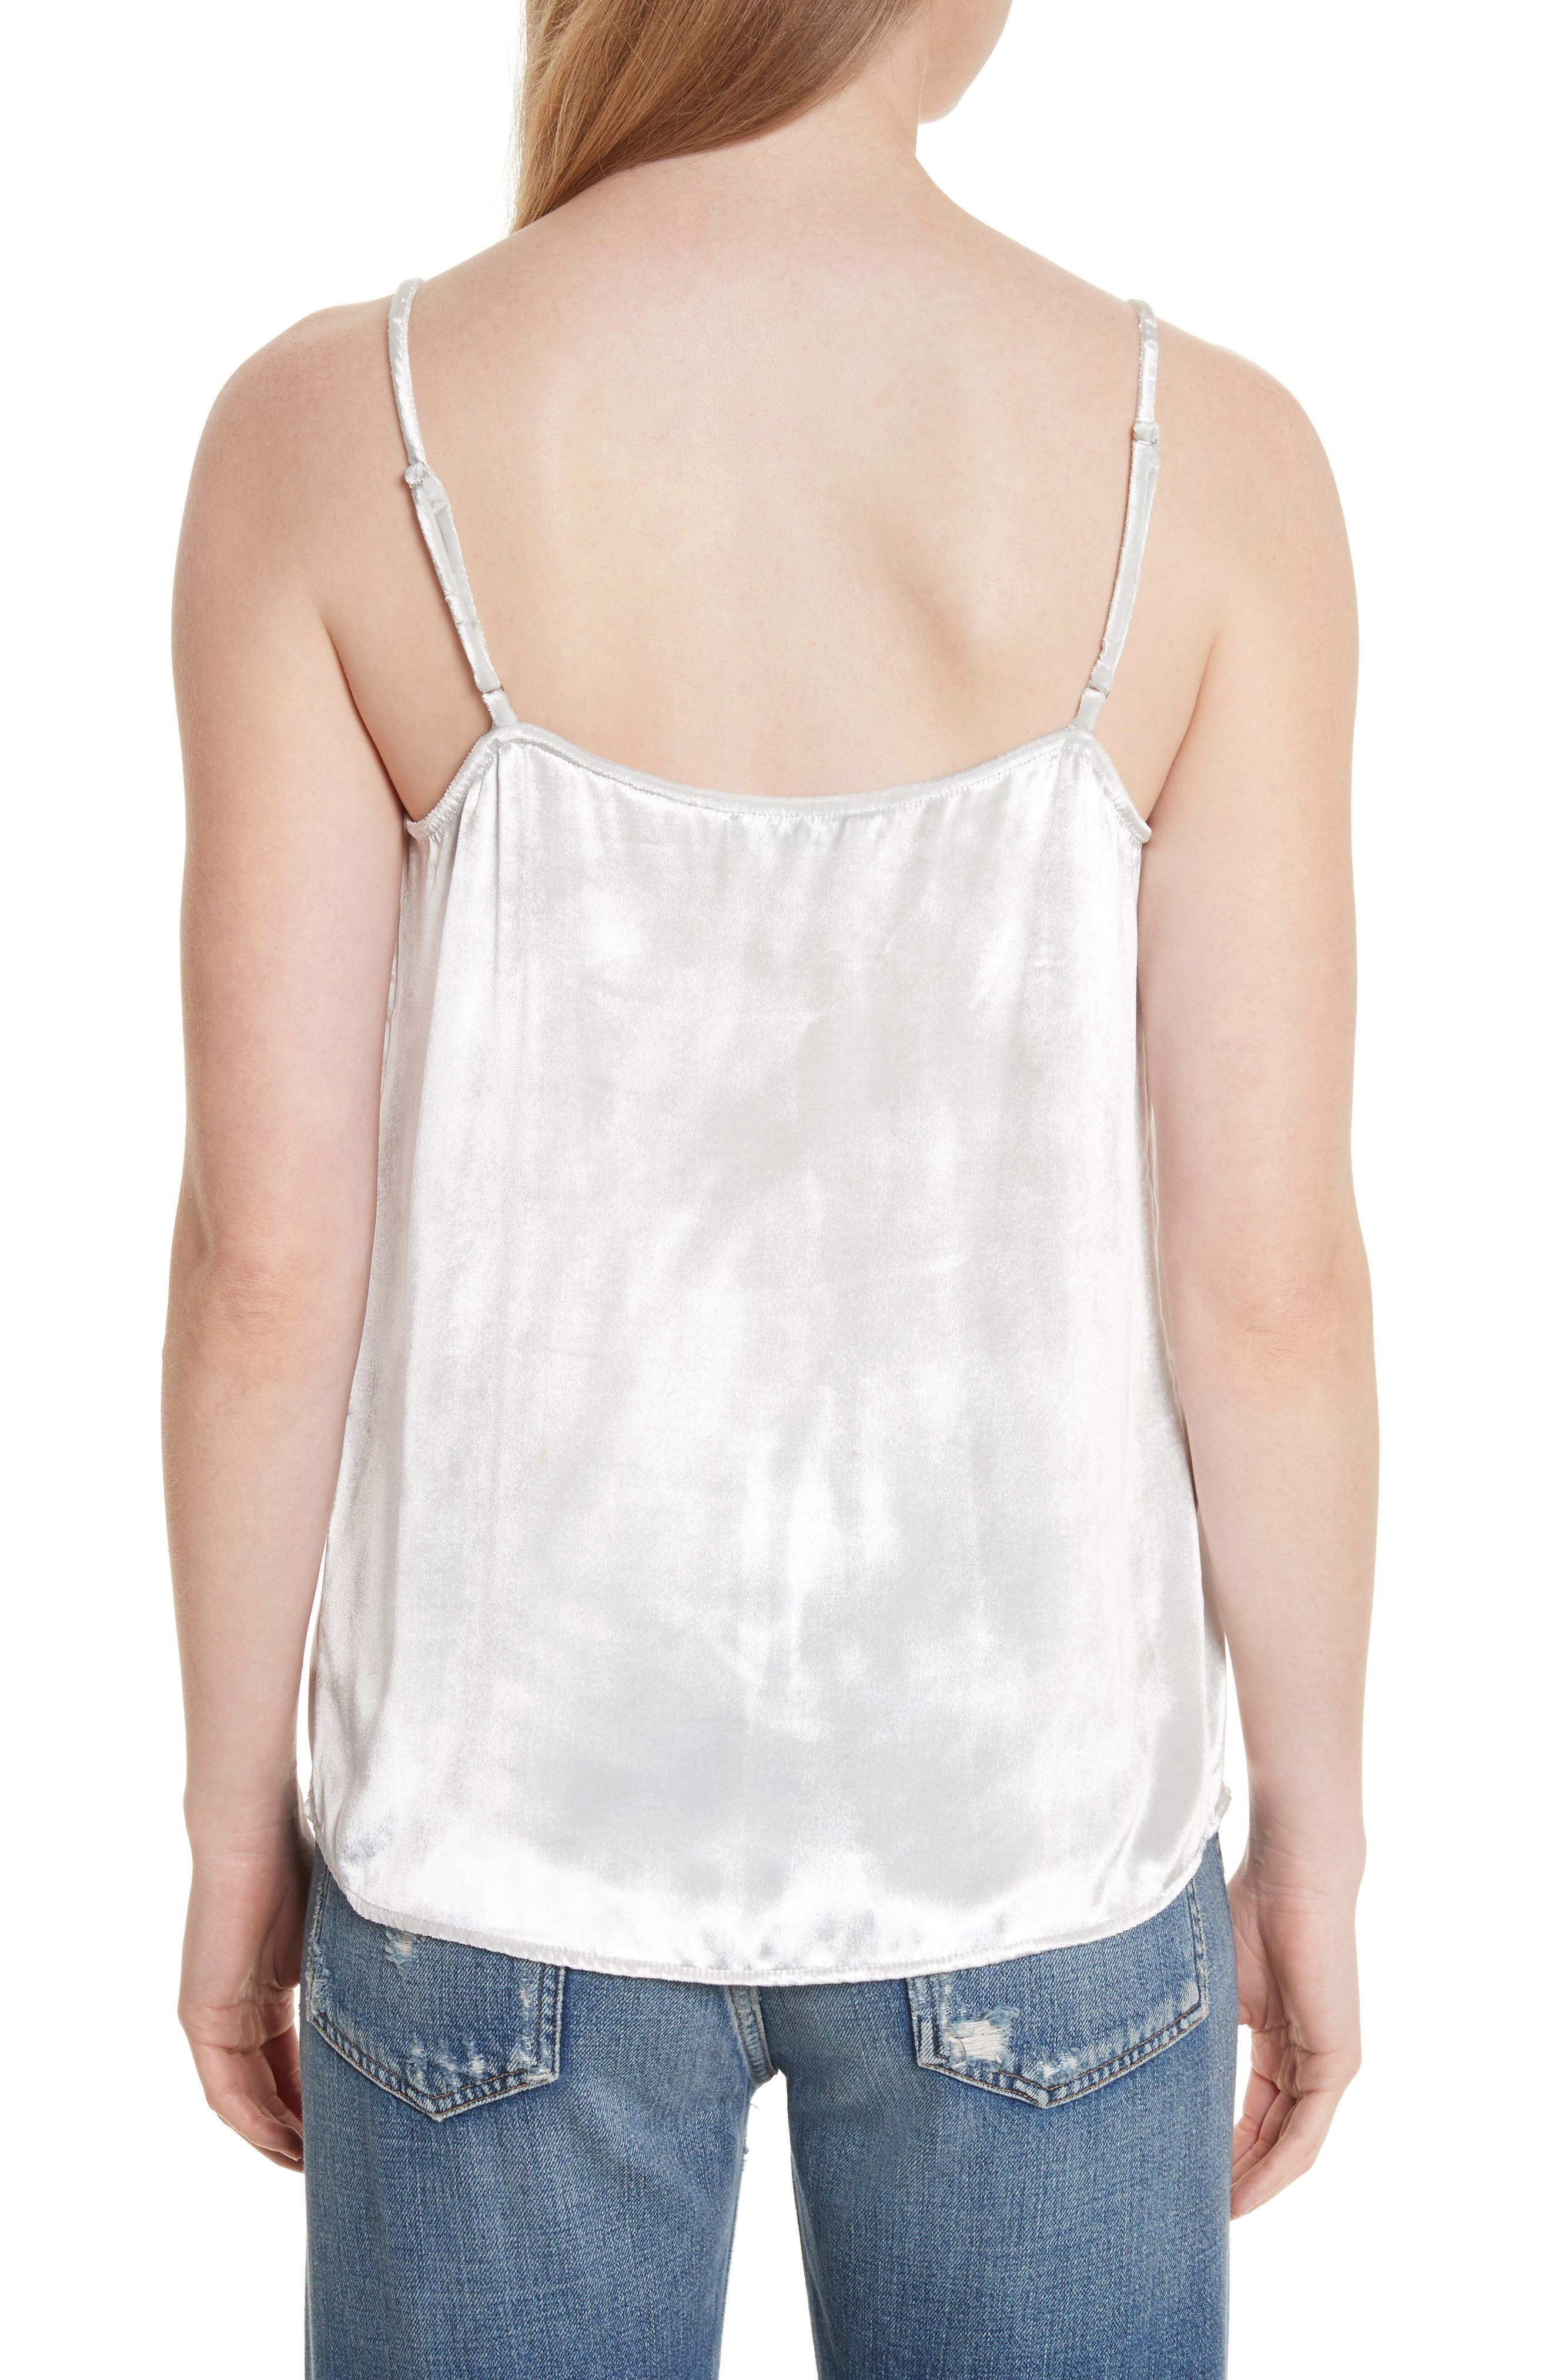 Layla Velvet Camisole,                             Alternate thumbnail 2, color,                             Mineral Grey